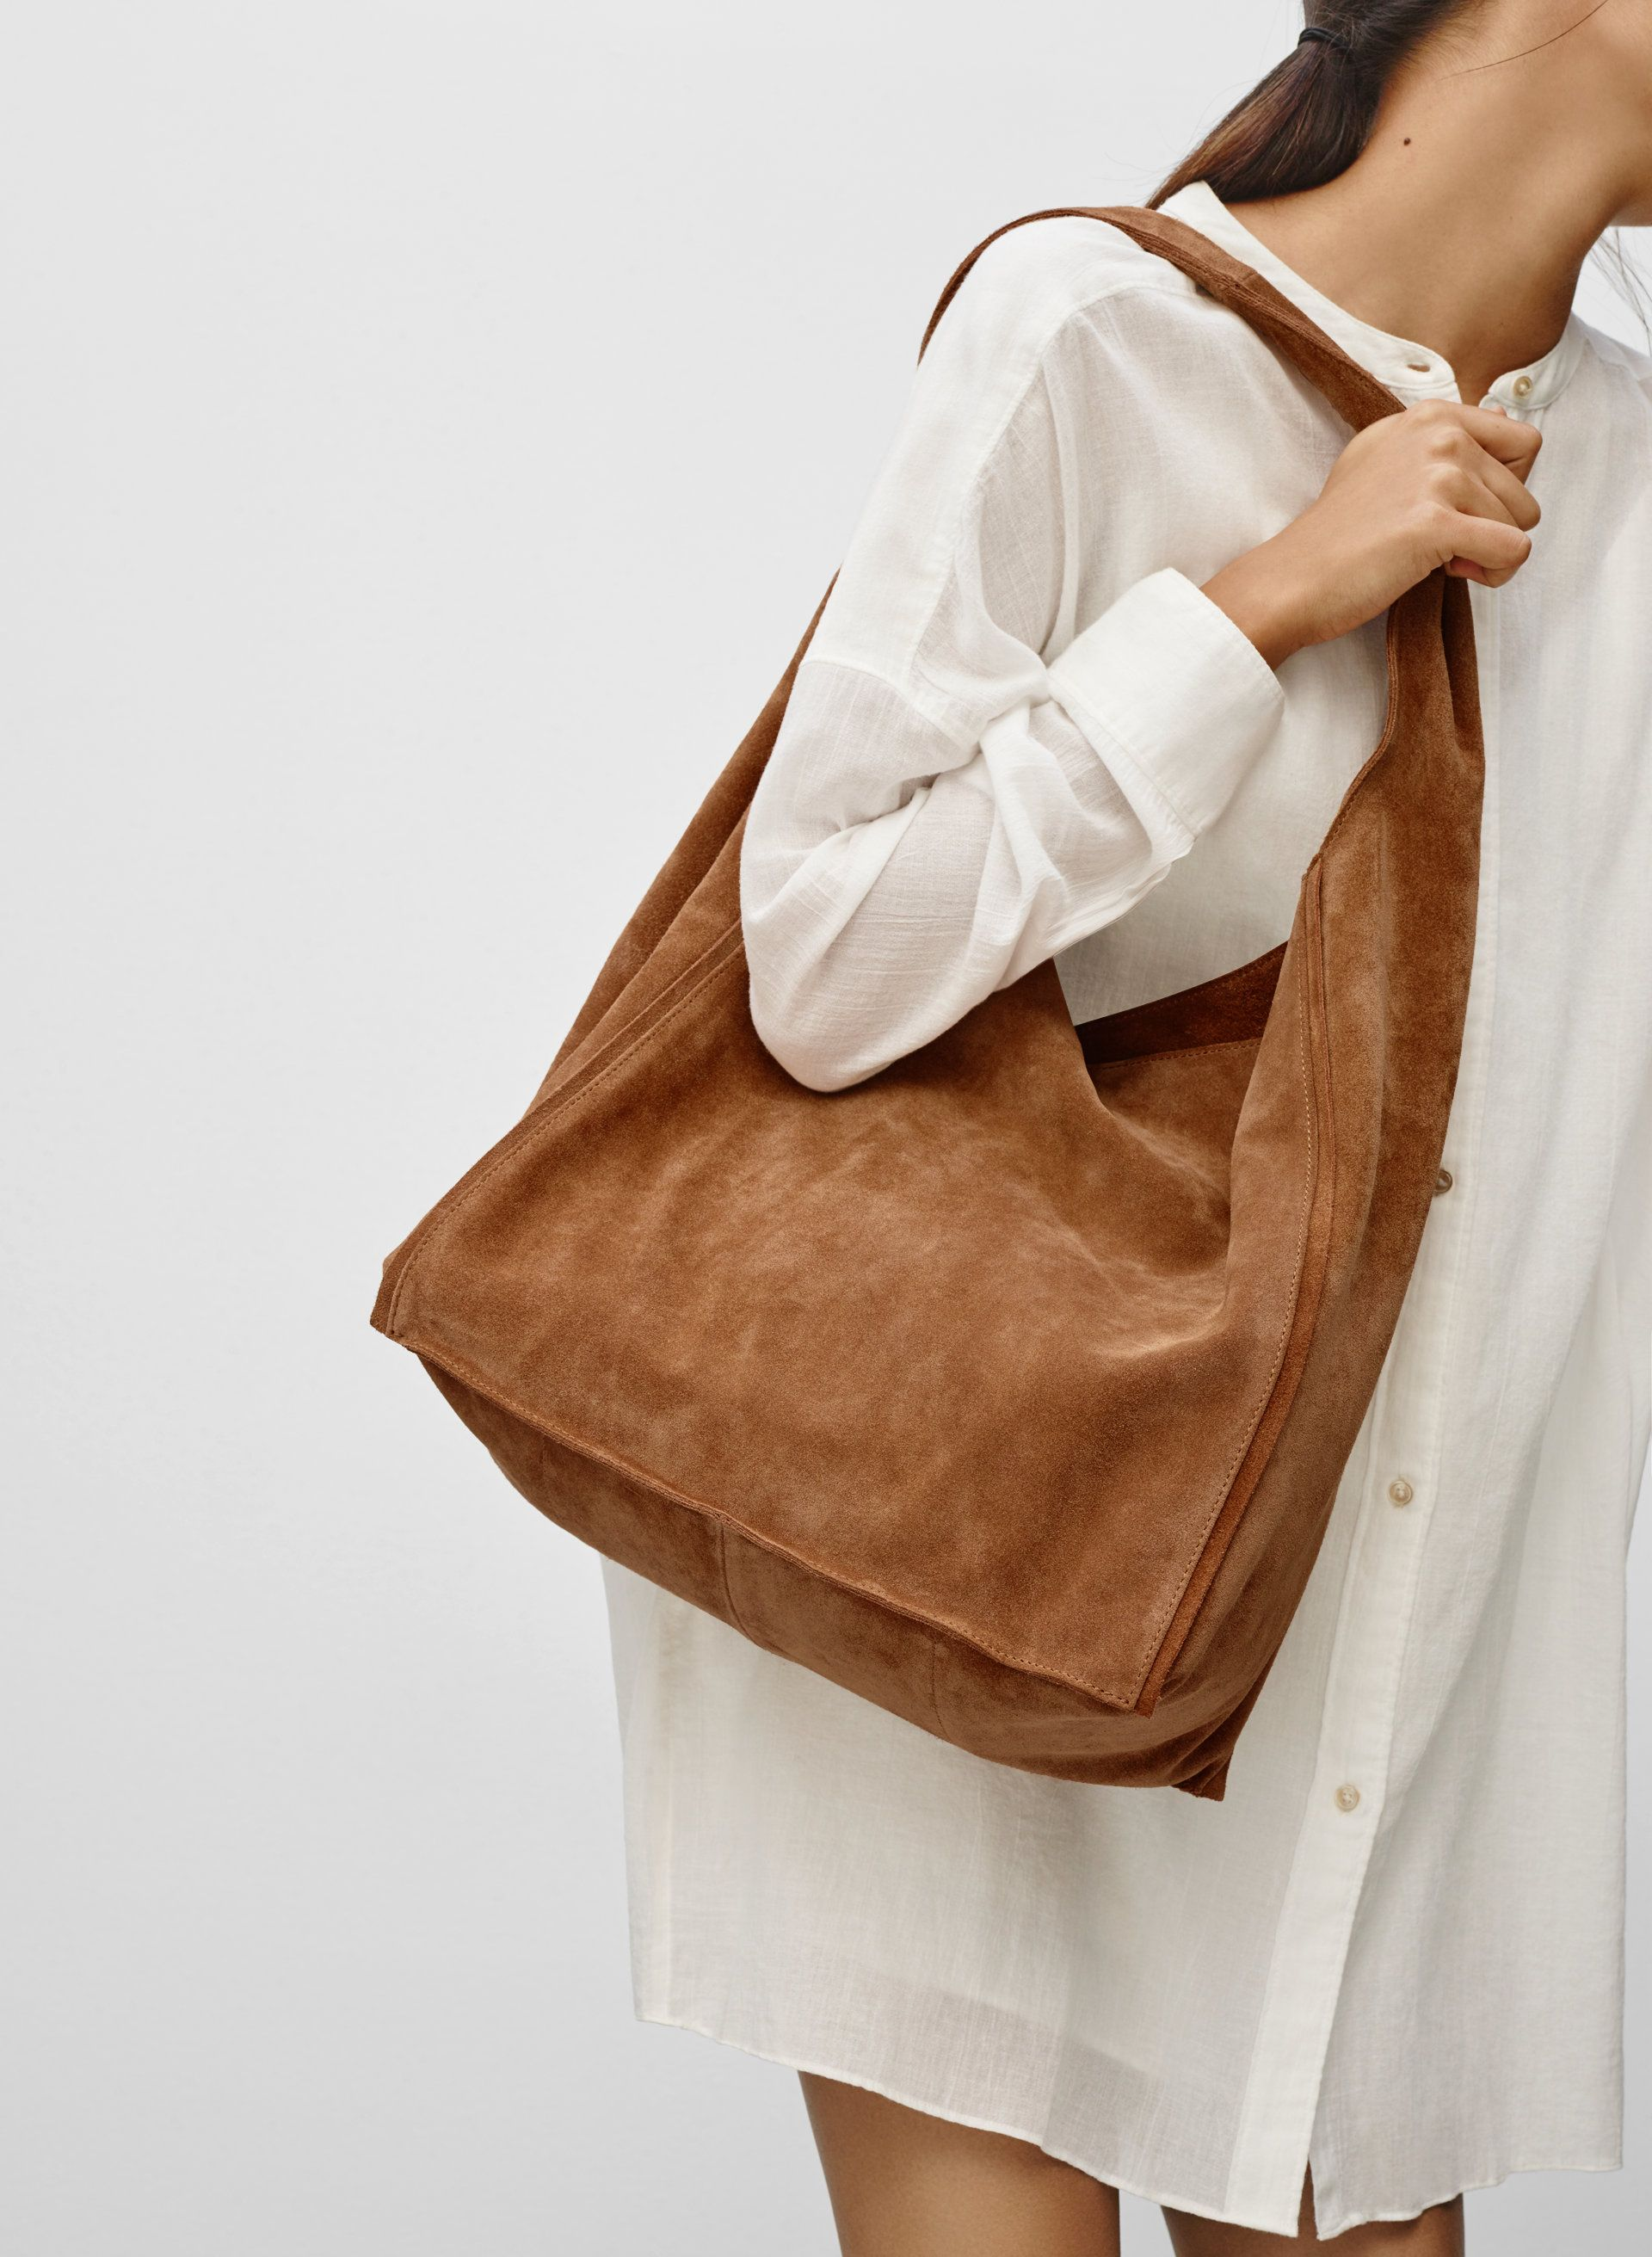 Silo hobo bag | Hobo bags, Bag and Purse wallet